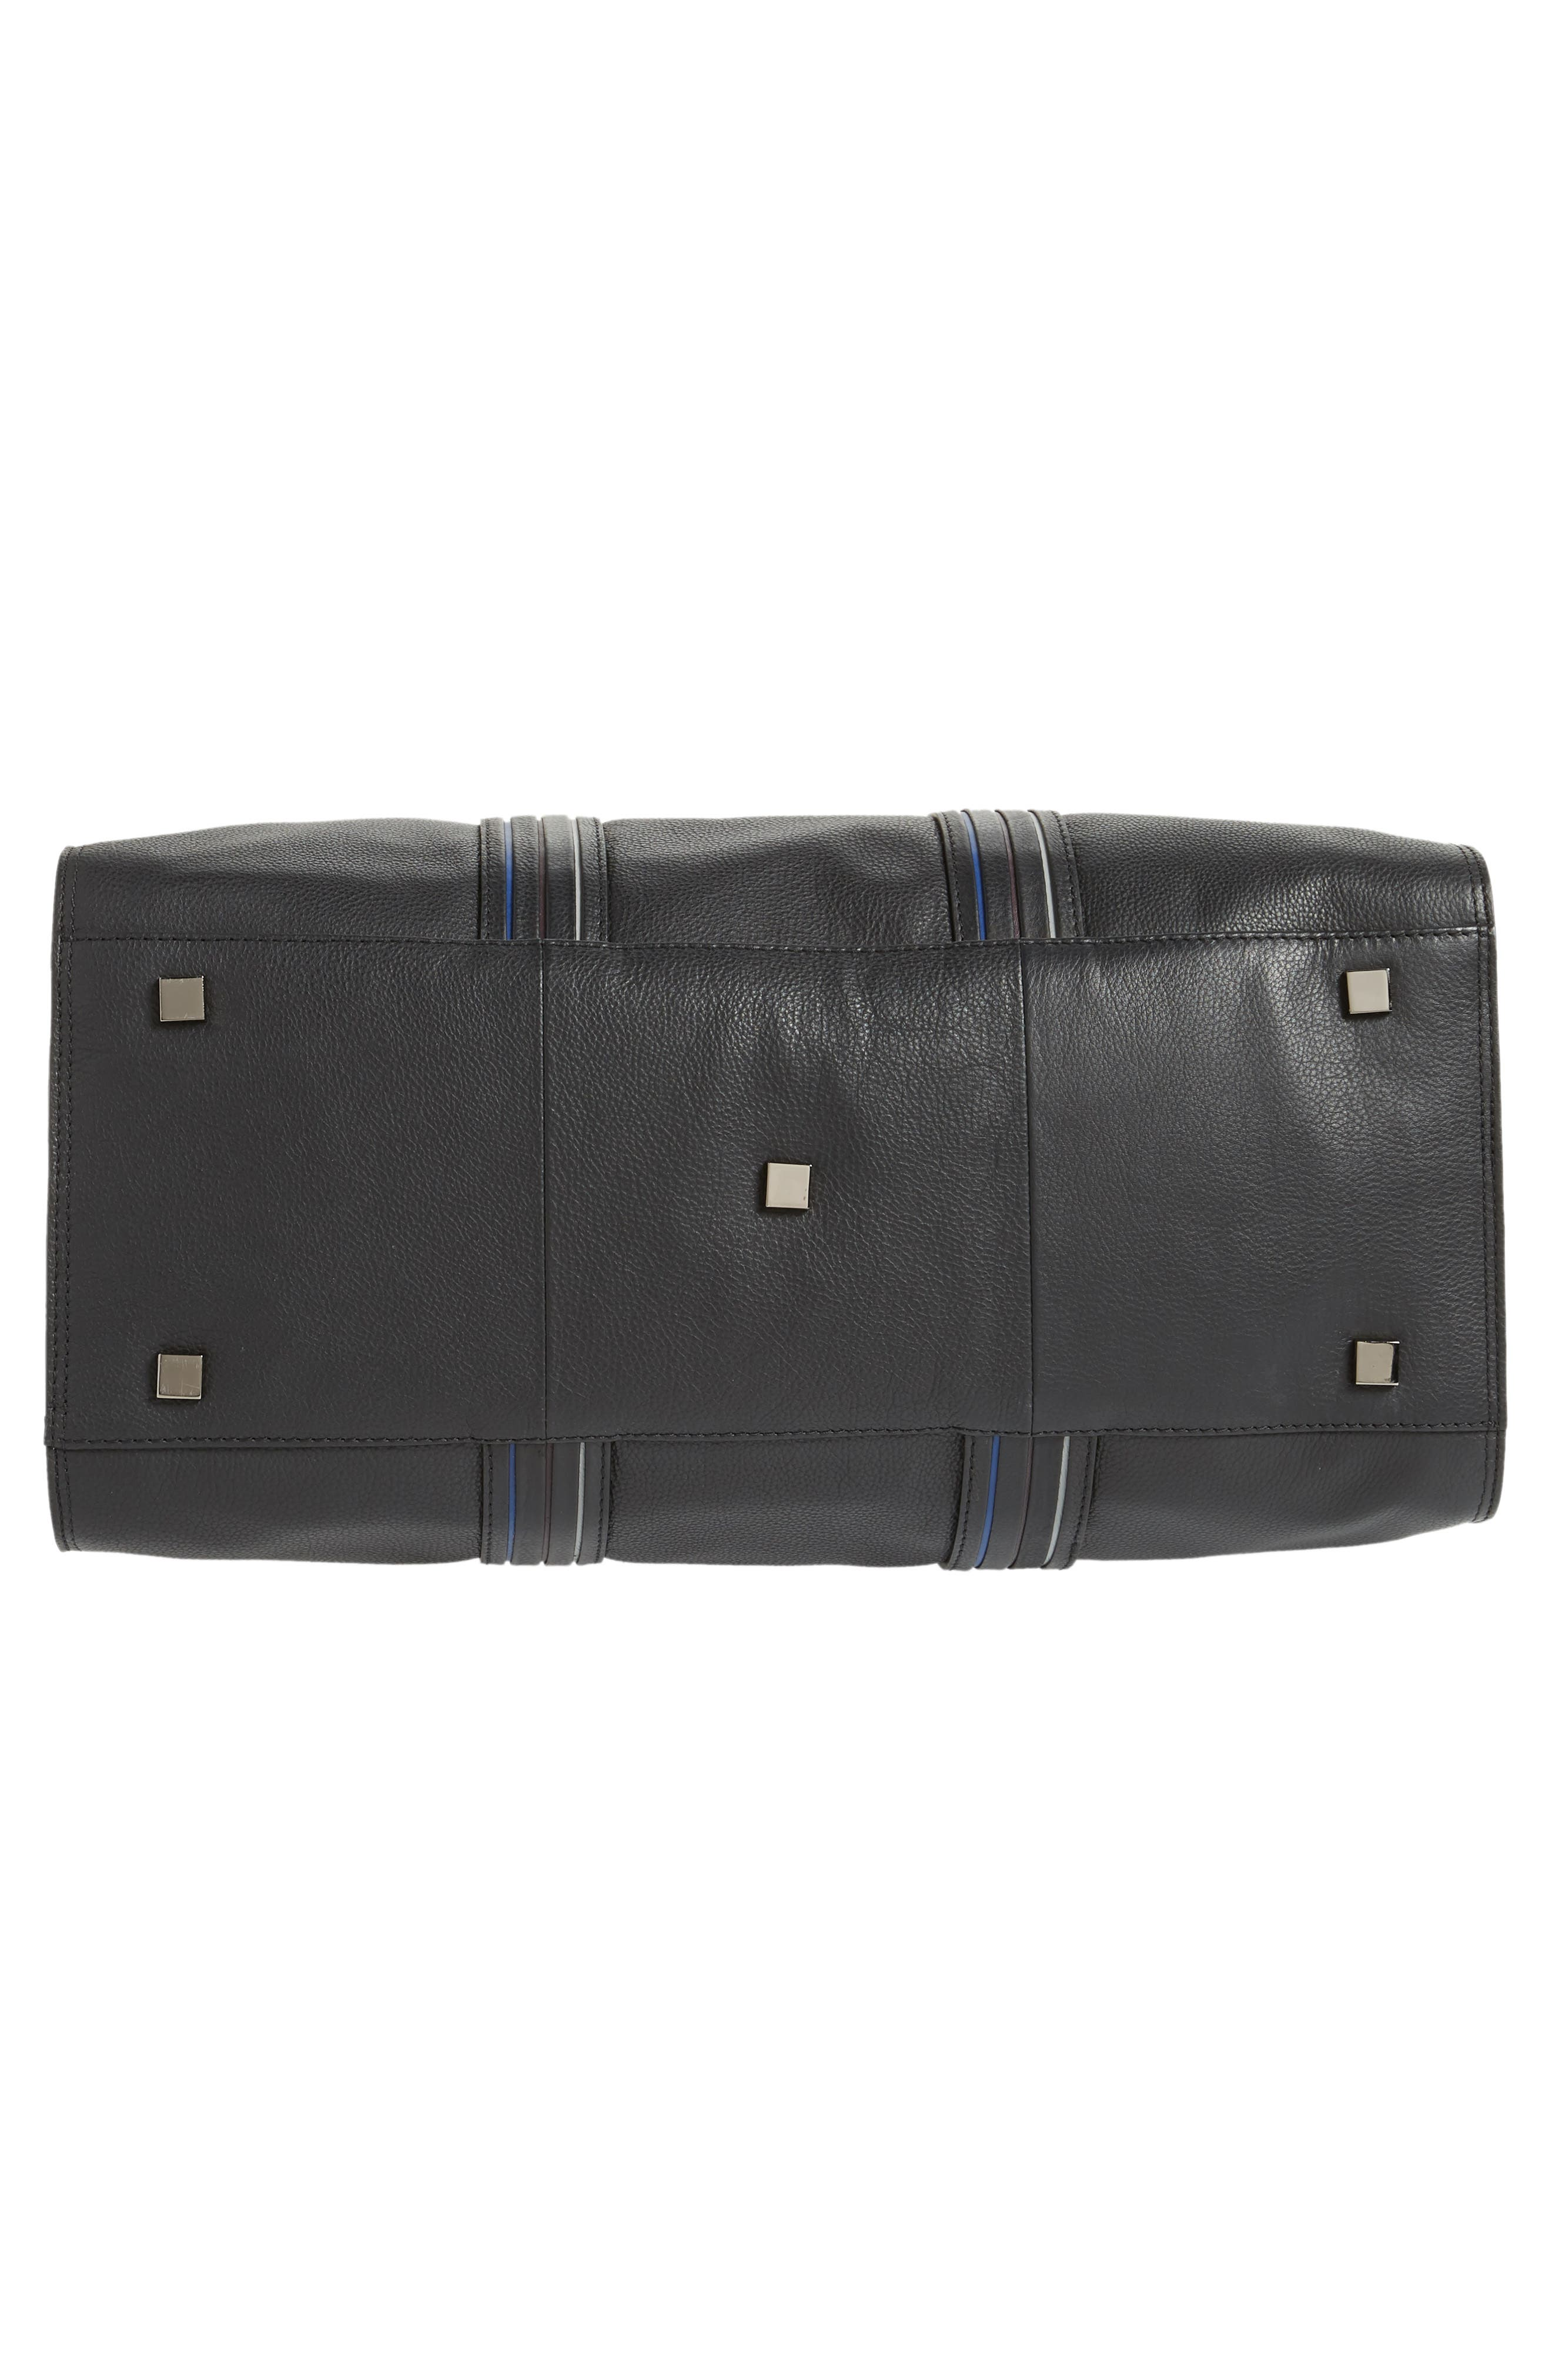 TED BAKER LONDON,                             Geeves Stripe Leather Duffel Bag,                             Alternate thumbnail 6, color,                             001